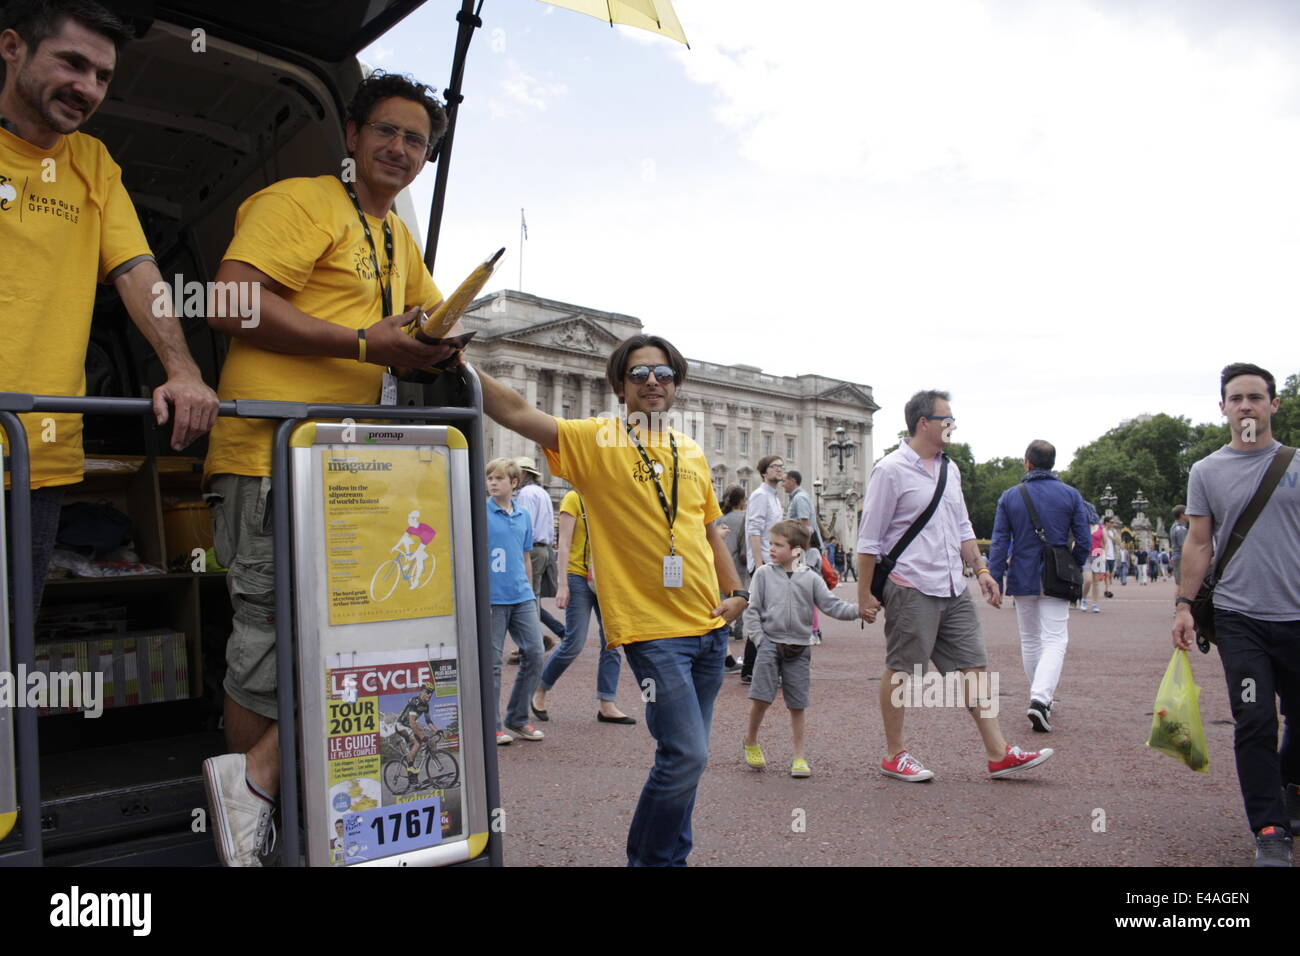 London, UK. 7th July, 2014. Organisers and staff of the 2014 Tour de France bicycle race selling souvenirs stand - Stock Image